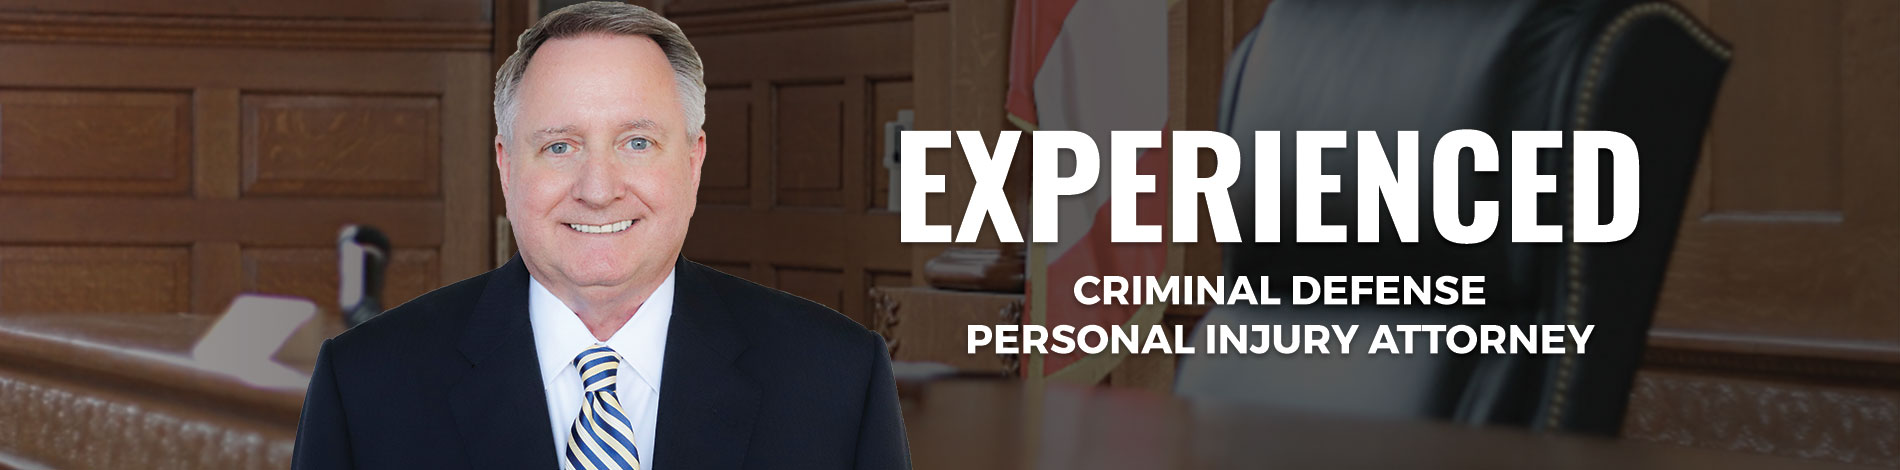 Experienced - Criminal Defense Personal Injury Attorney